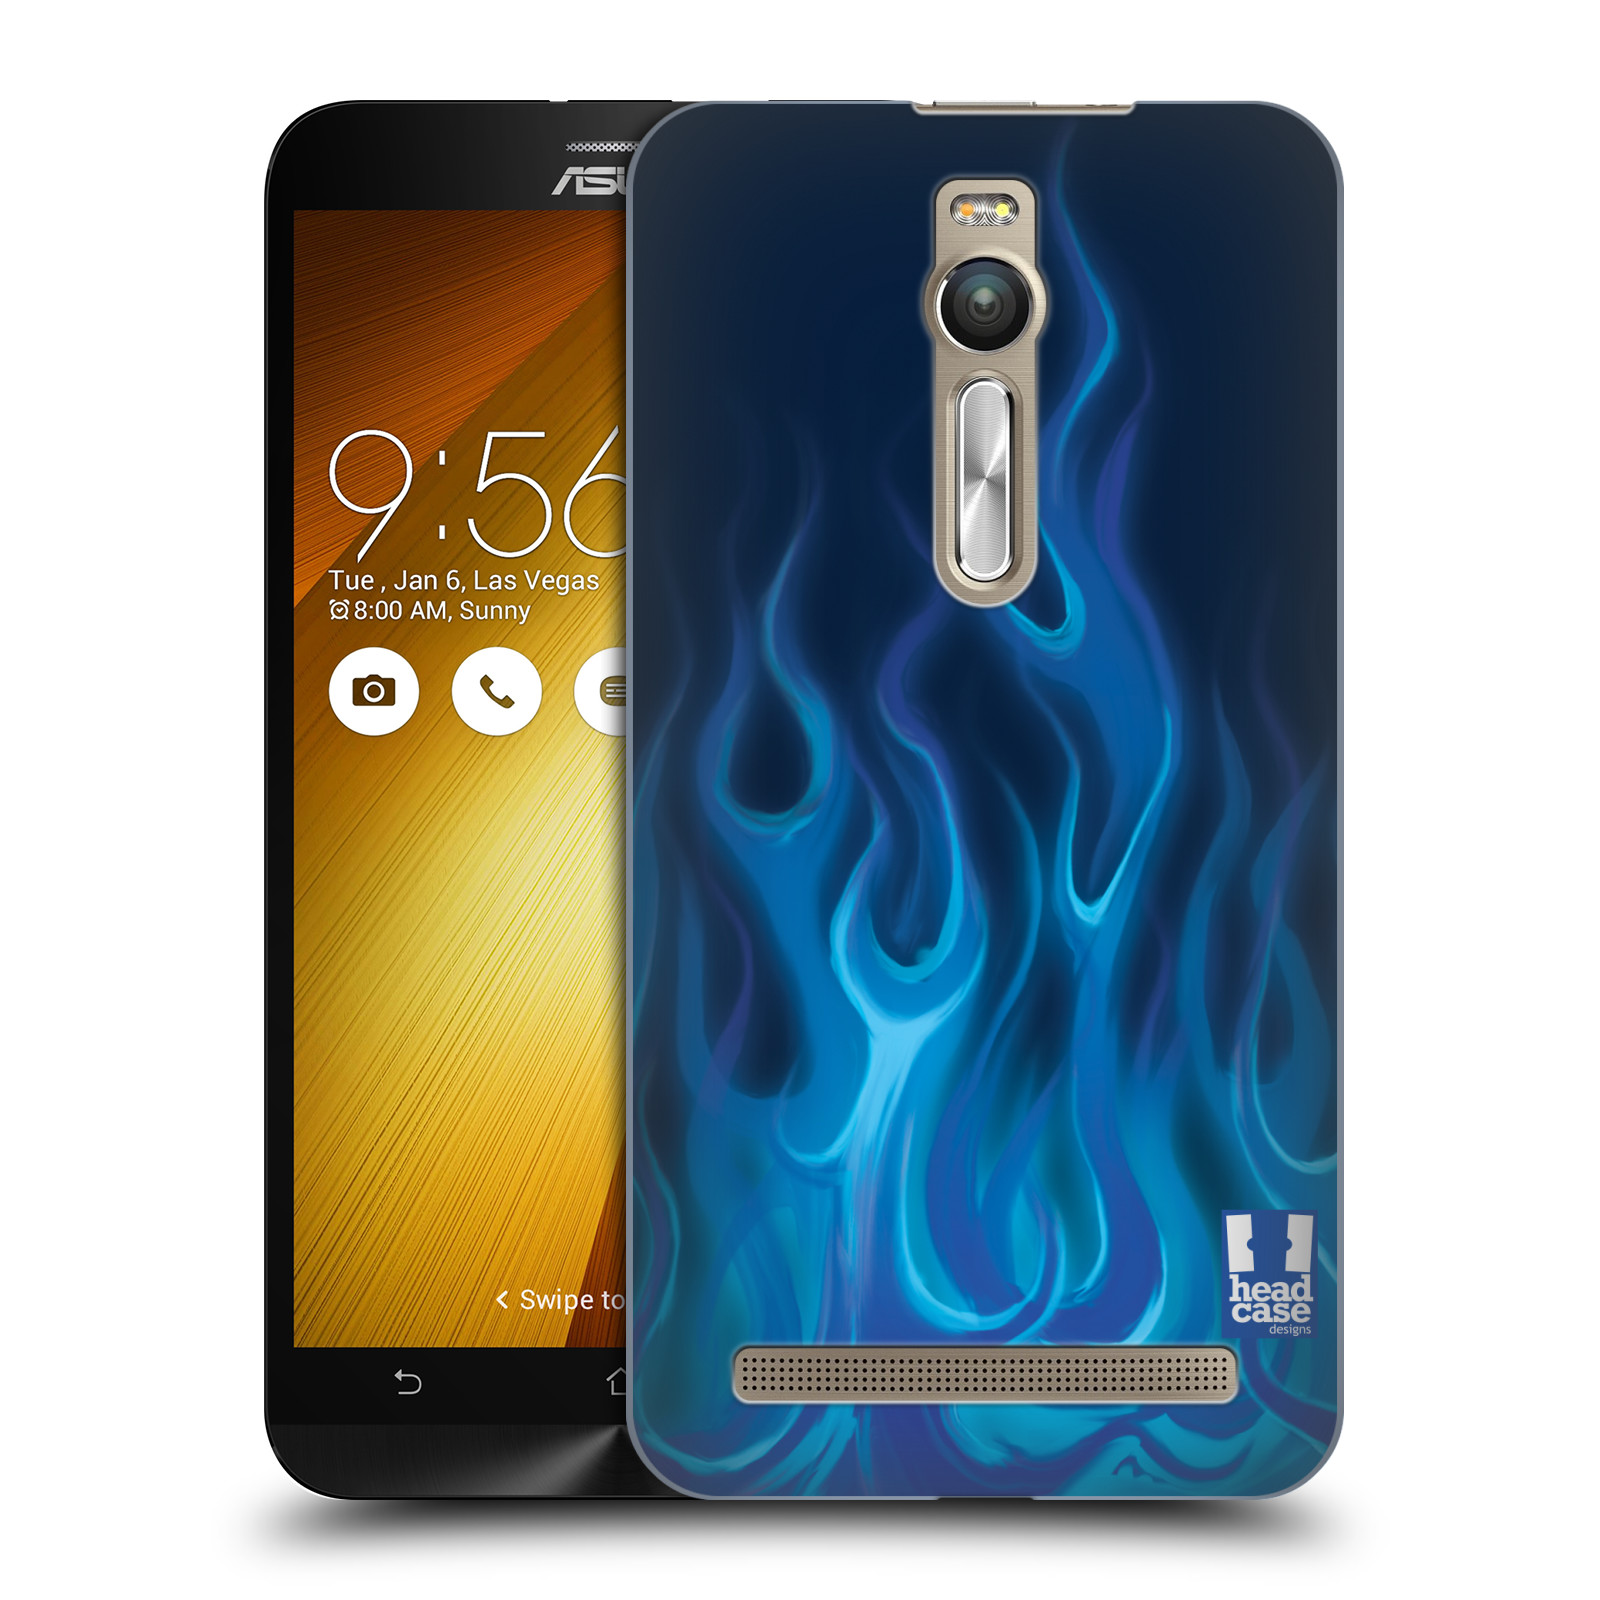 HEAD CASE DESIGNS HOT ROD FLAMES HARD BACK CASE FOR ONEPLUS ASUS AMAZON